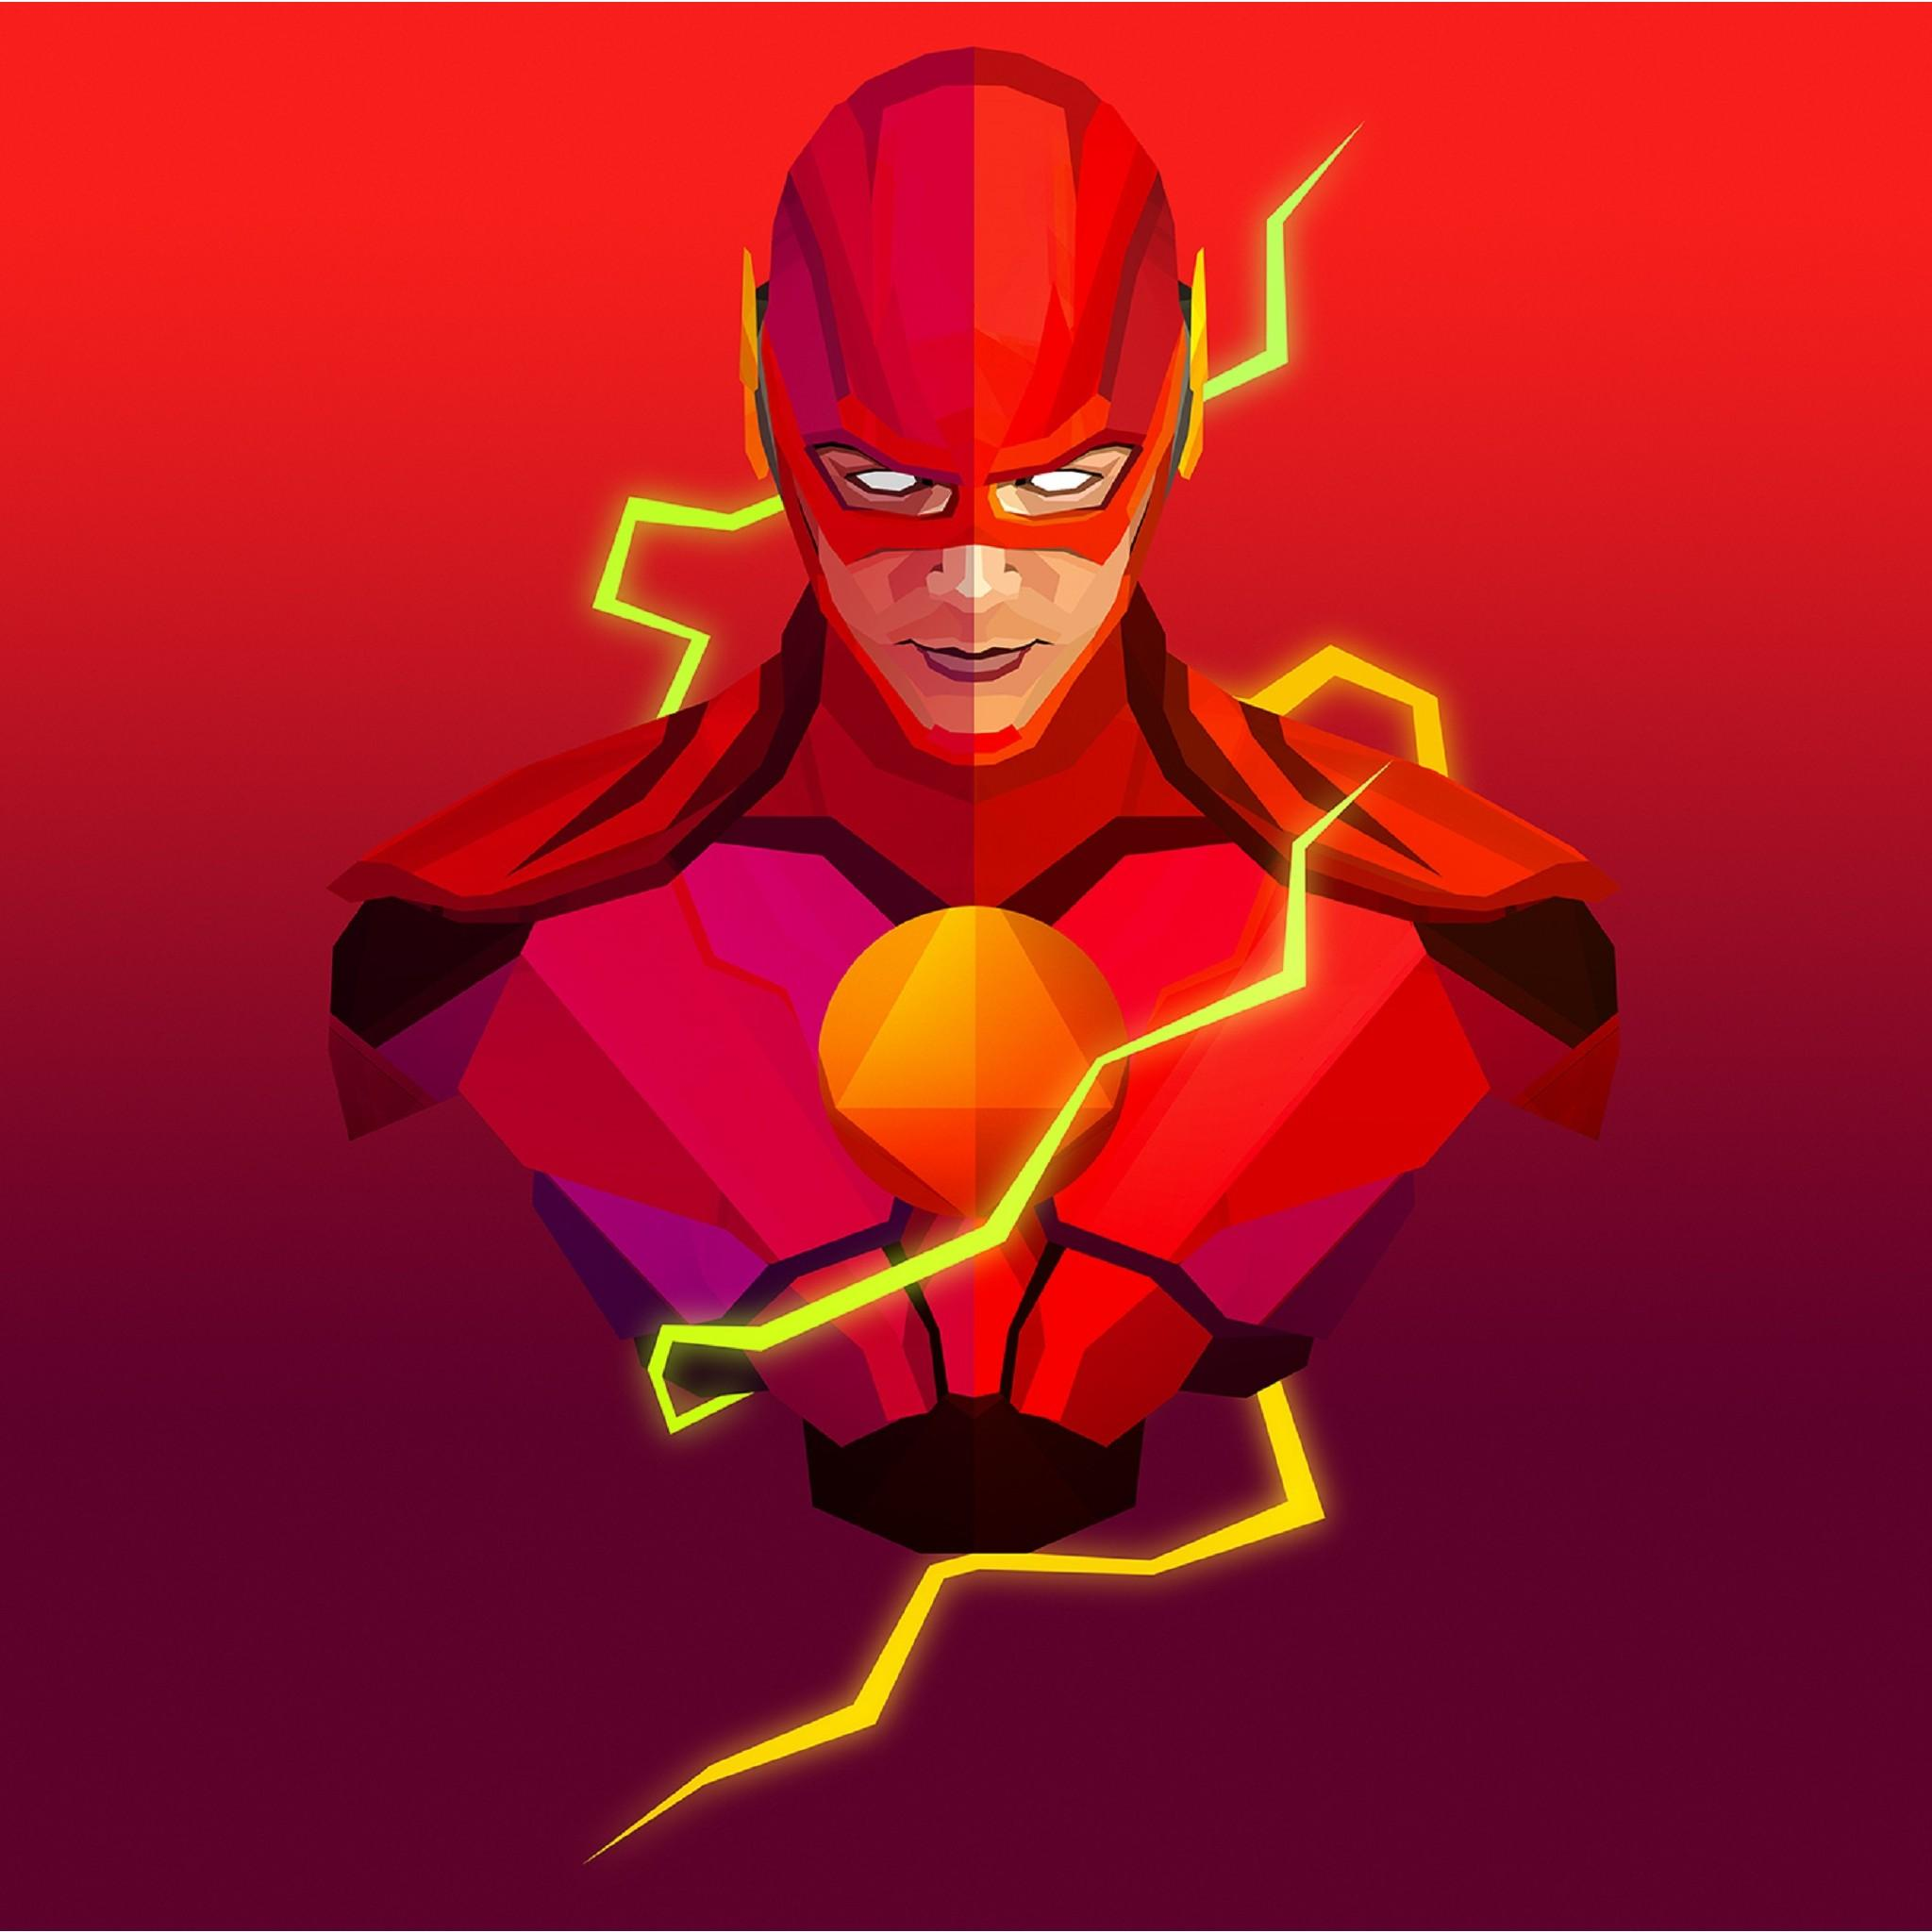 Flash Hd Wallpapers Top Free Flash Hd Backgrounds Wallpaperaccess